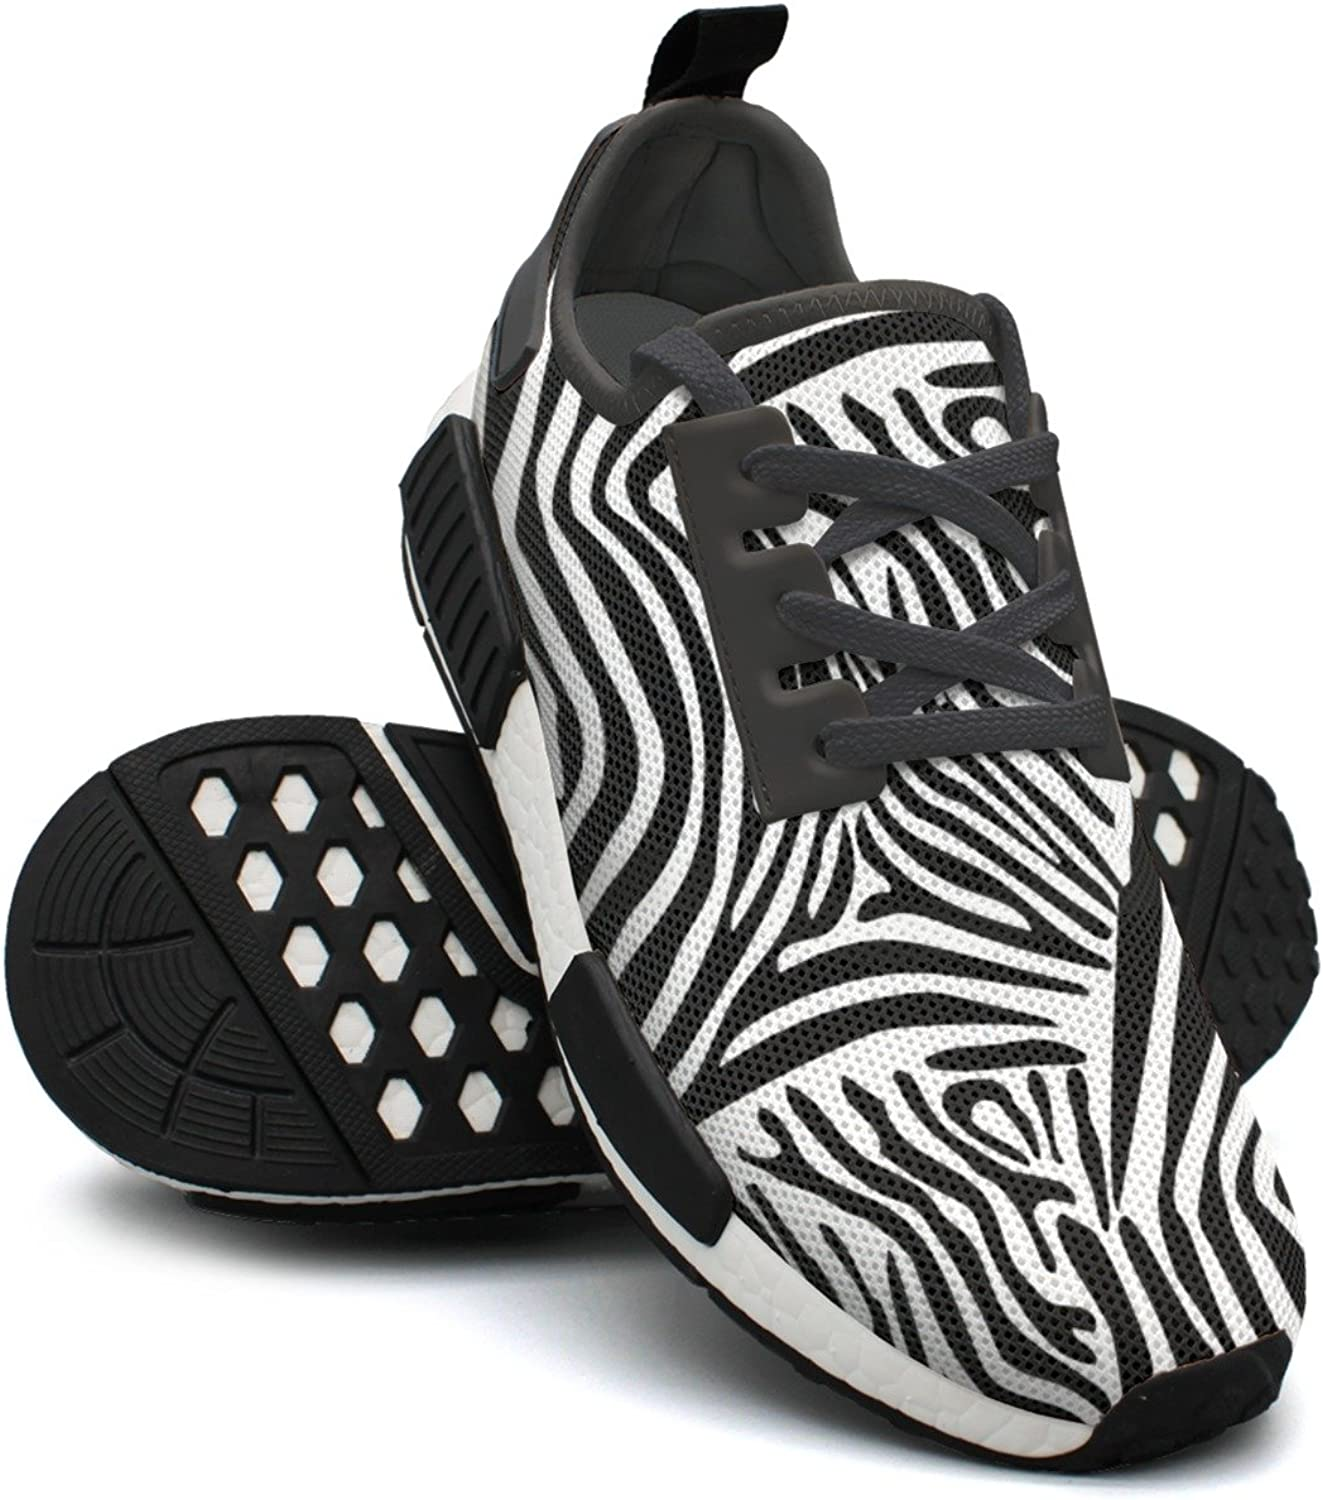 White and Dark Zebra Stripes Sports Basketball Trail Running shoes for Women NMD